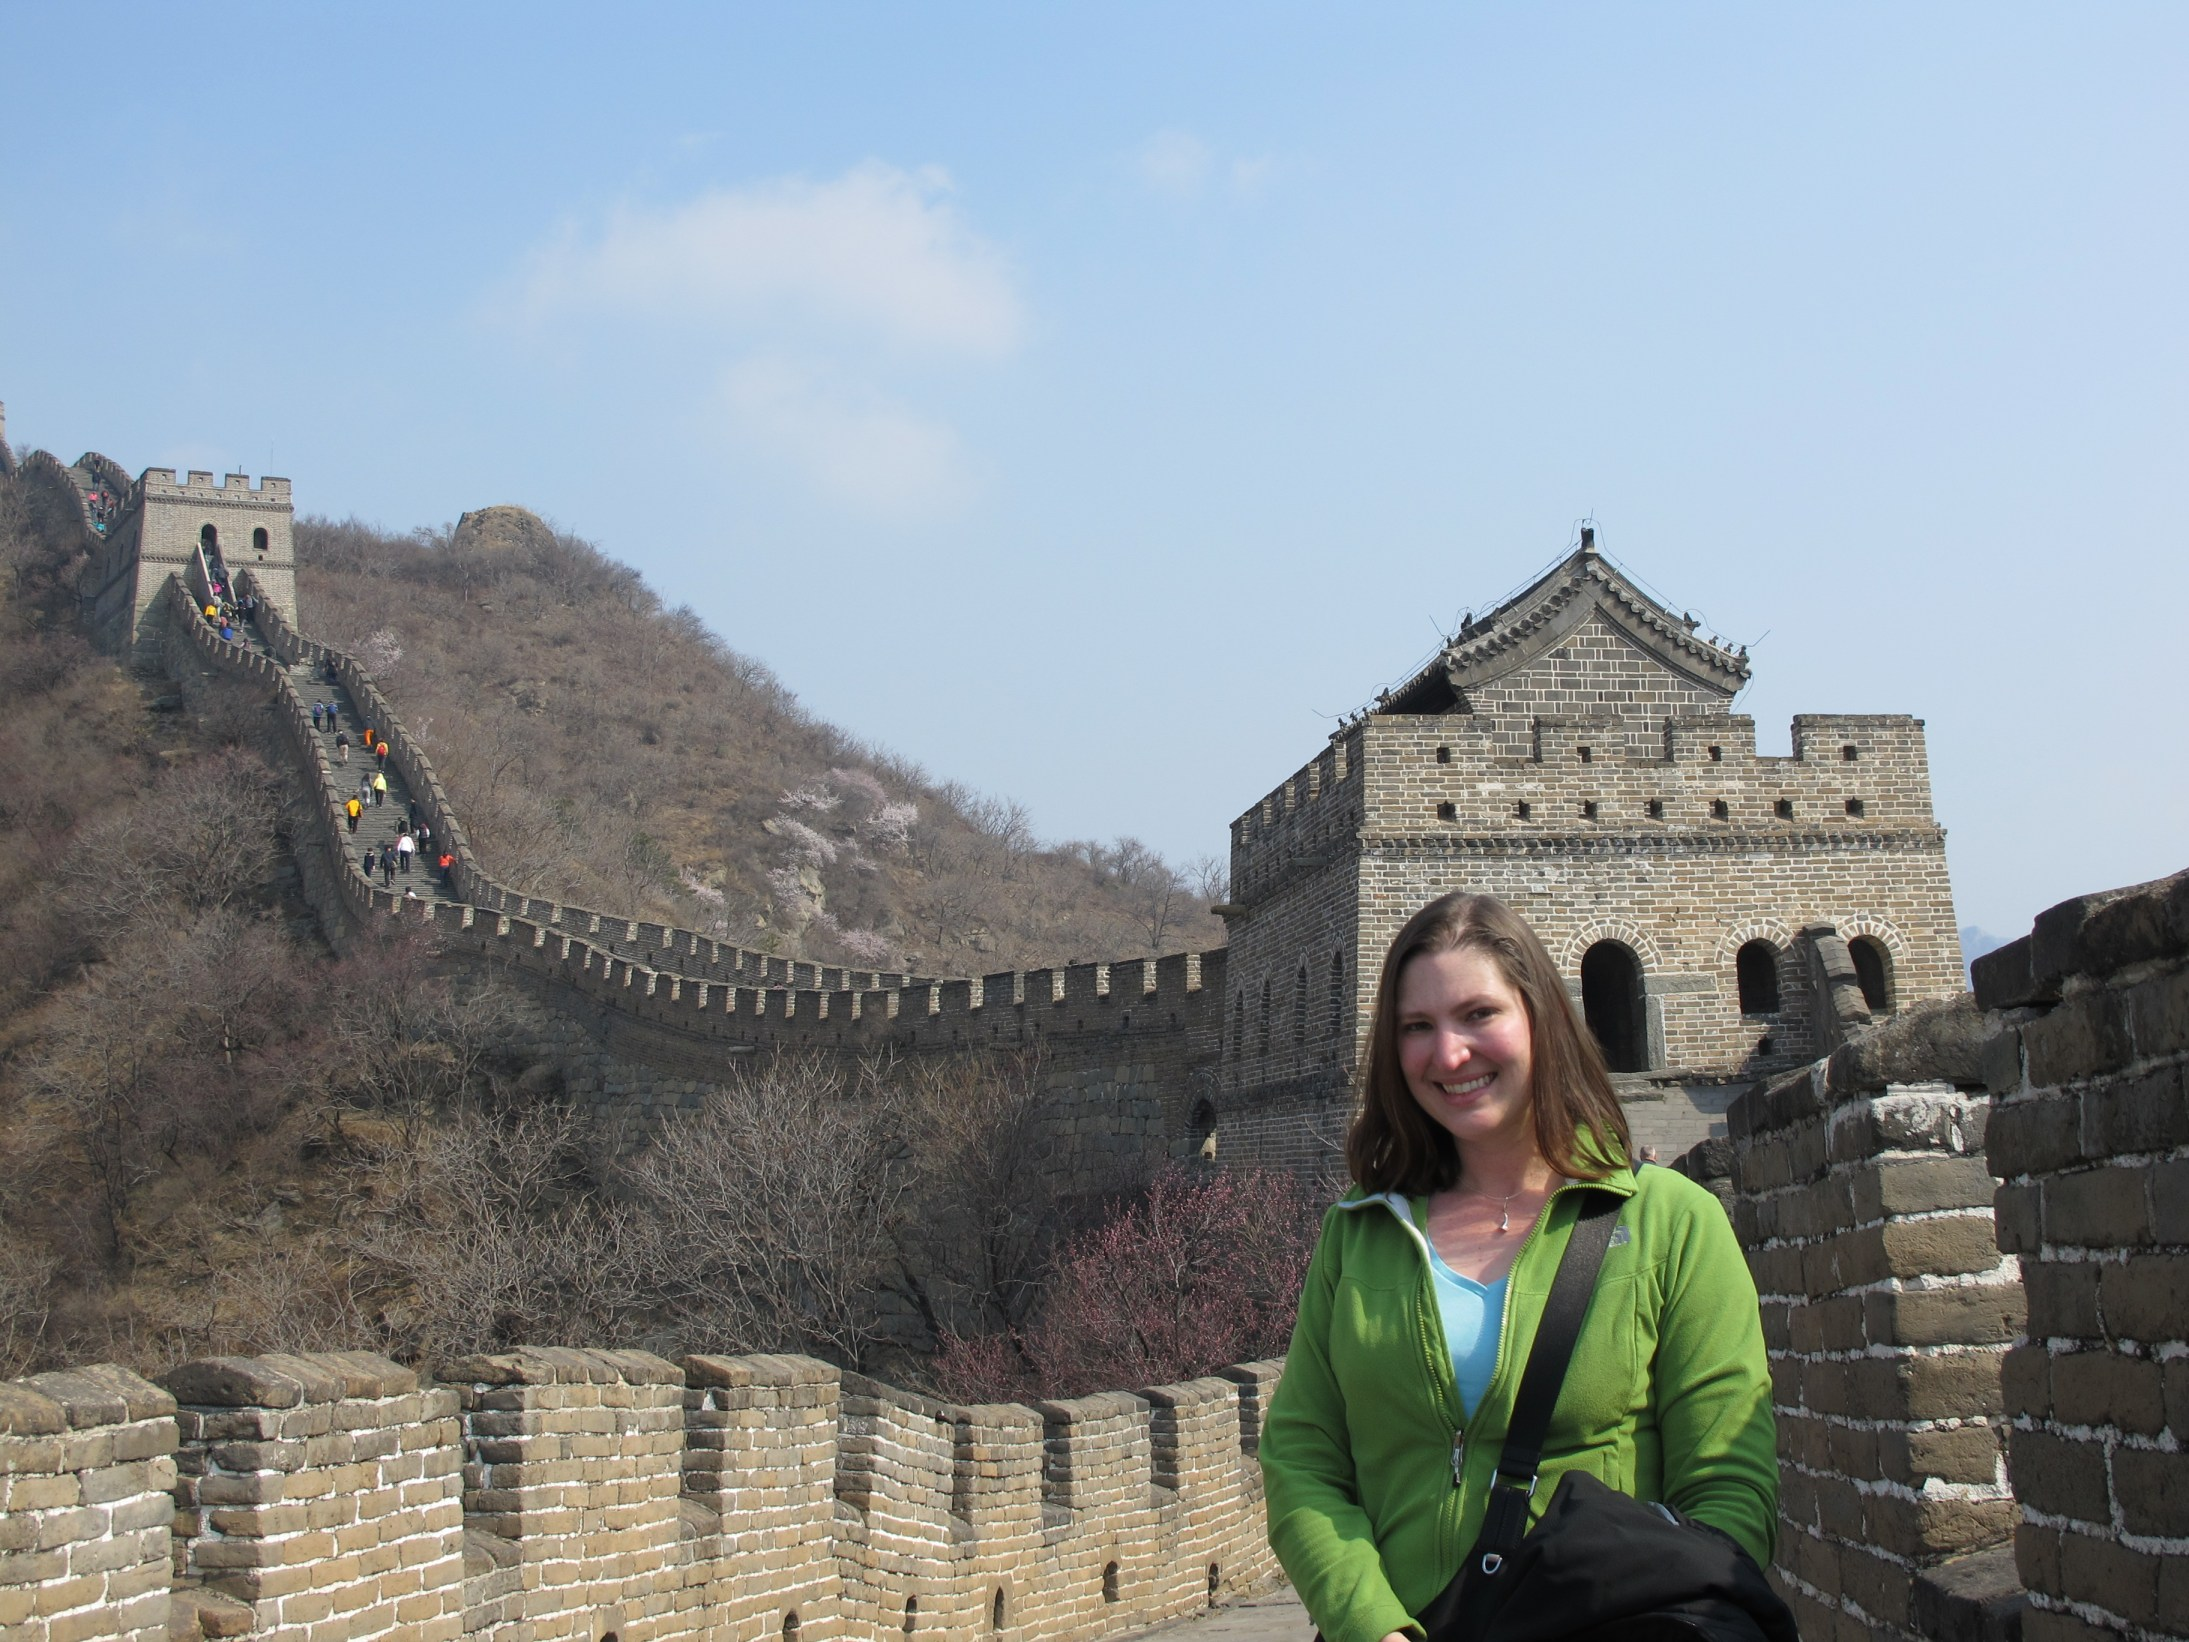 Me on the Great Wall. How cool is that?